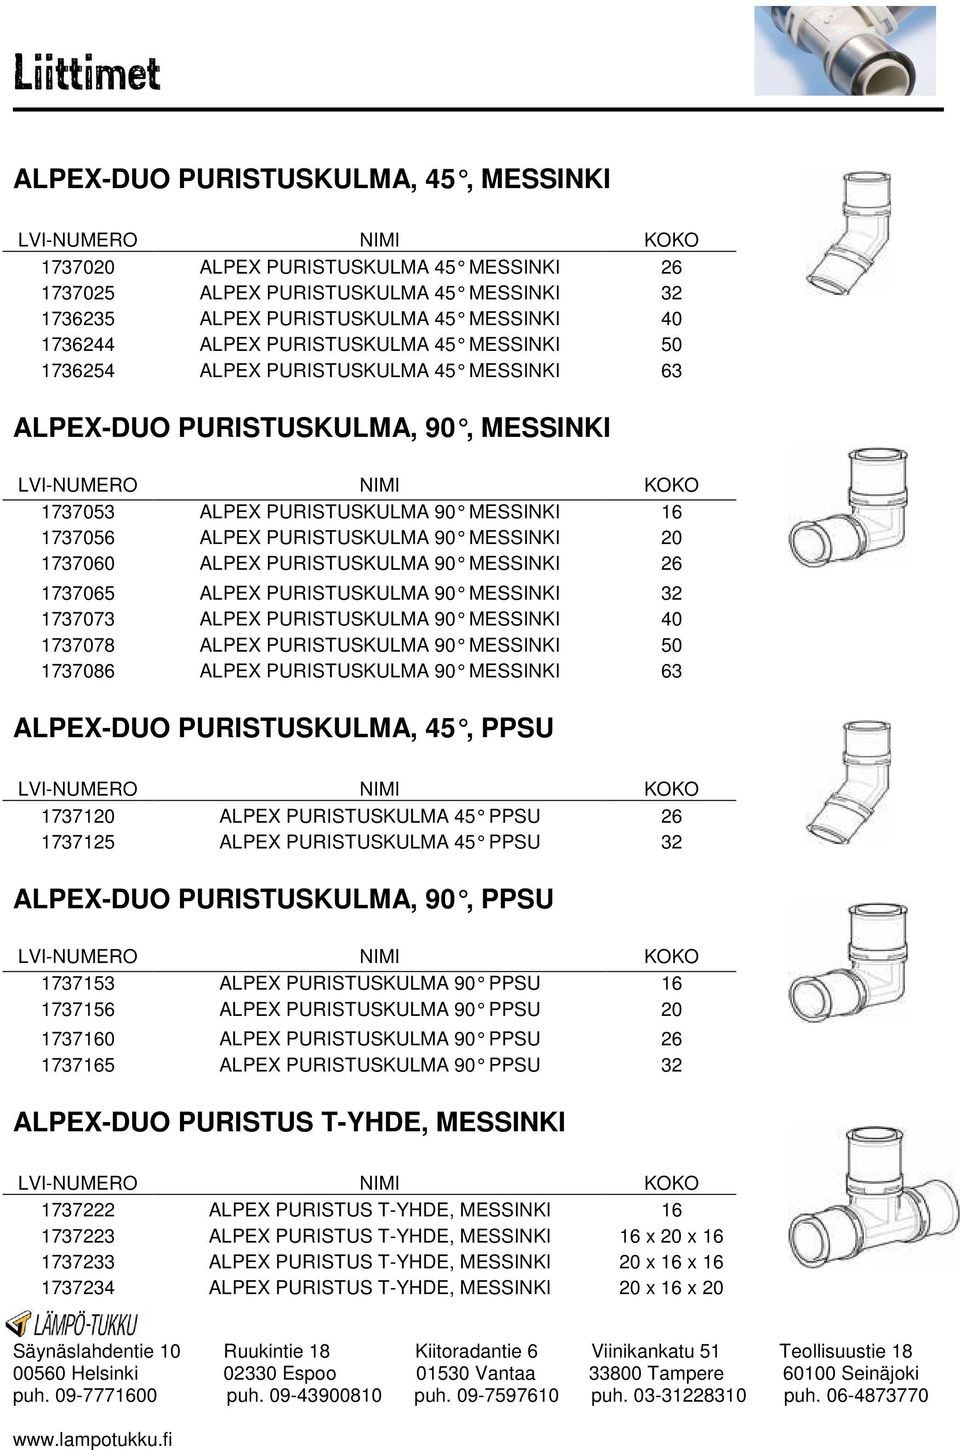 1737060 ALPEX PURISTUSKULMA 90 MESSINKI 26 1737065 ALPEX PURISTUSKULMA 90 MESSINKI 32 1737073 ALPEX PURISTUSKULMA 90 MESSINKI 40 1737078 ALPEX PURISTUSKULMA 90 MESSINKI 50 1737086 ALPEX PURISTUSKULMA